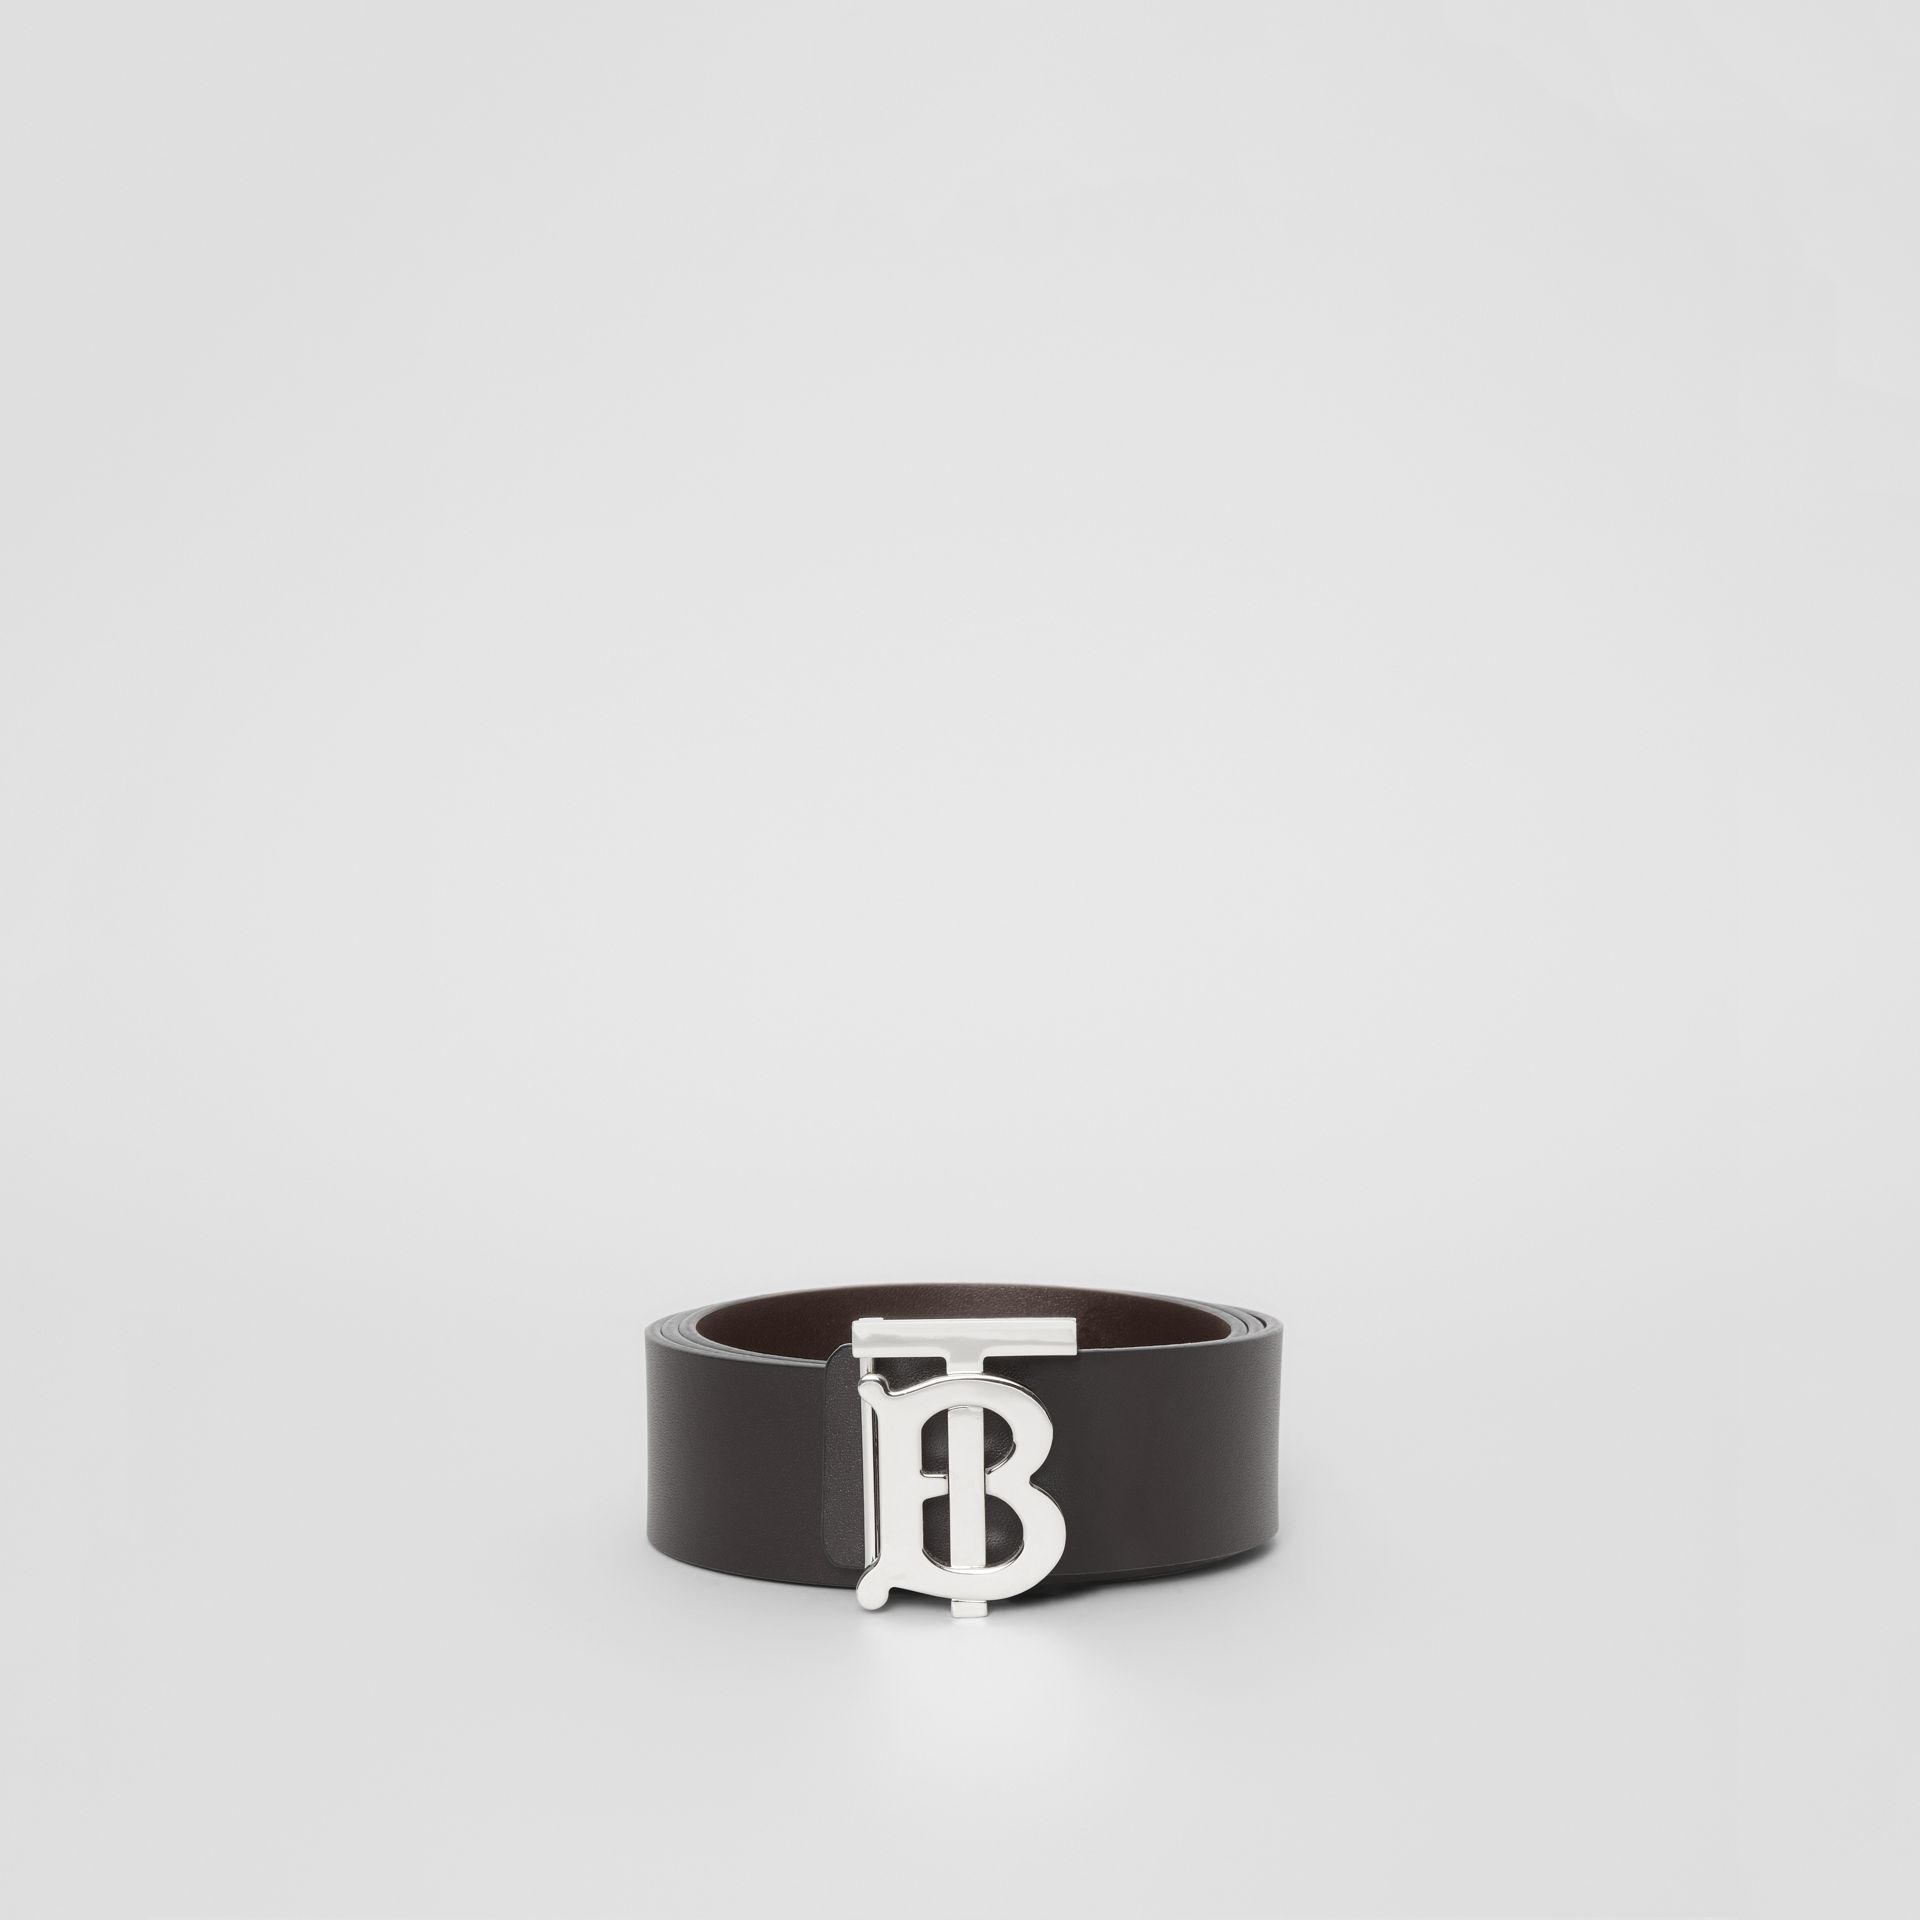 Reversible Monogram Motif Leather Belt in Black/malt Brown - Men | Burberry United States - gallery image 2